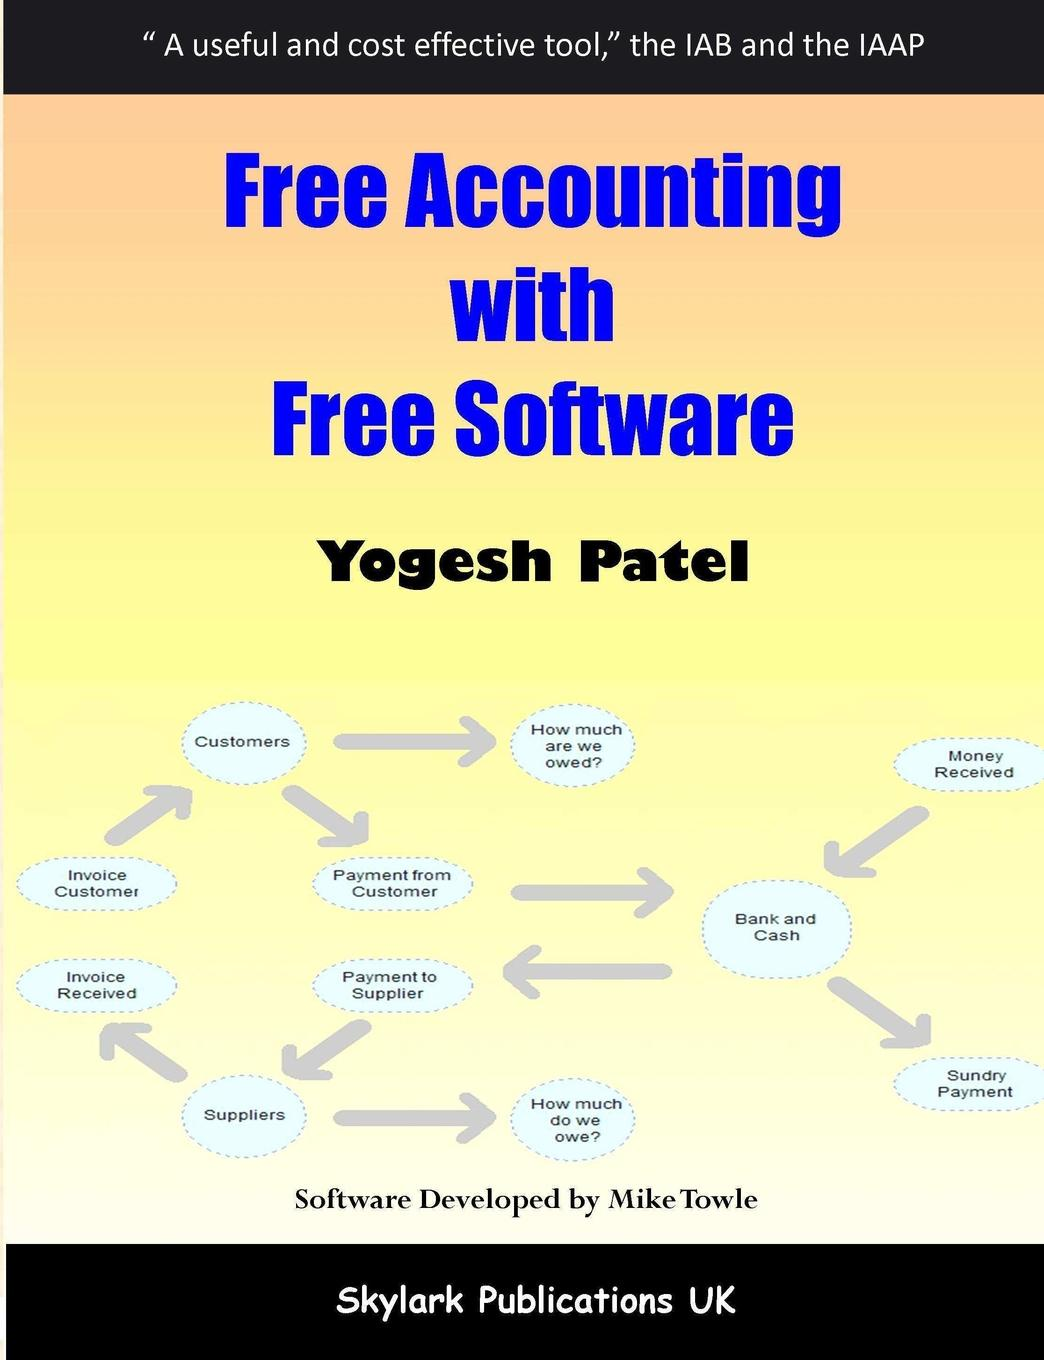 Yogesh Patel. Free Accounting with Free Software